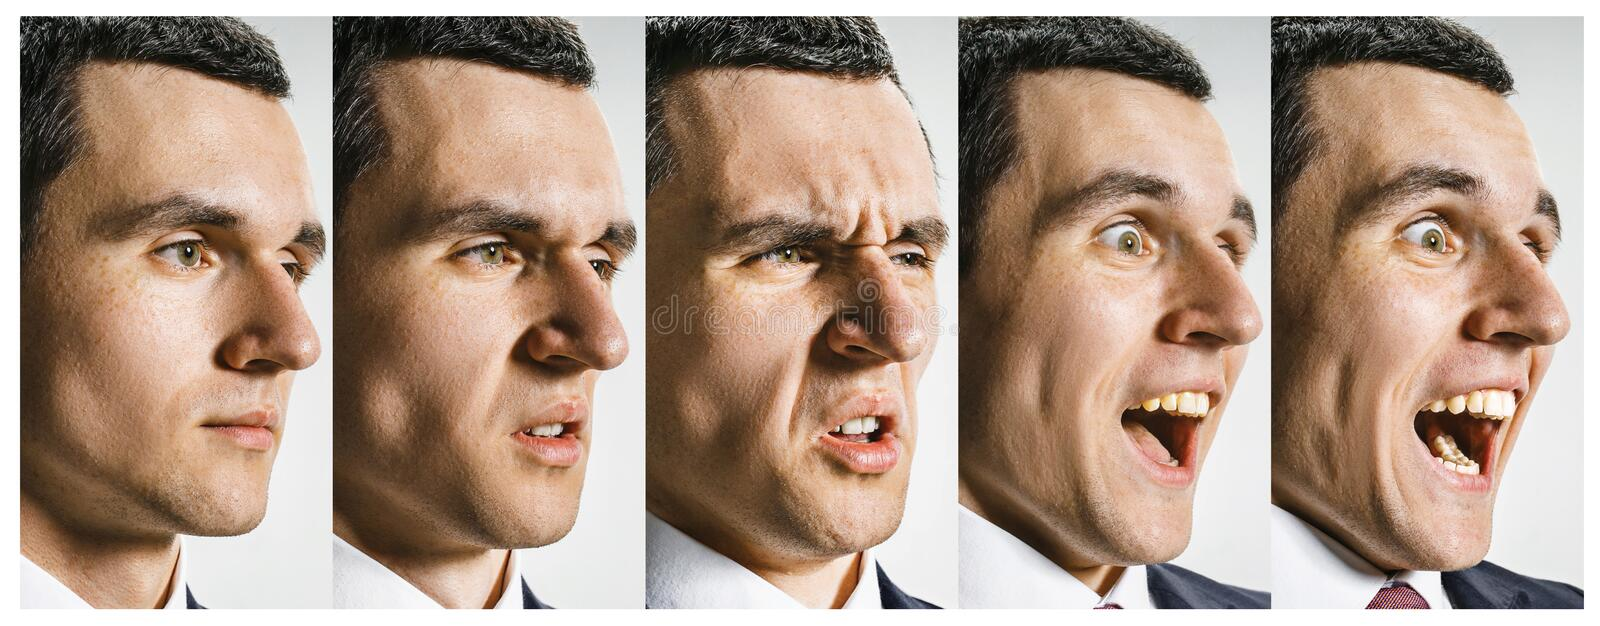 The collage of different human facial expressions, emotions and feelings. stock images